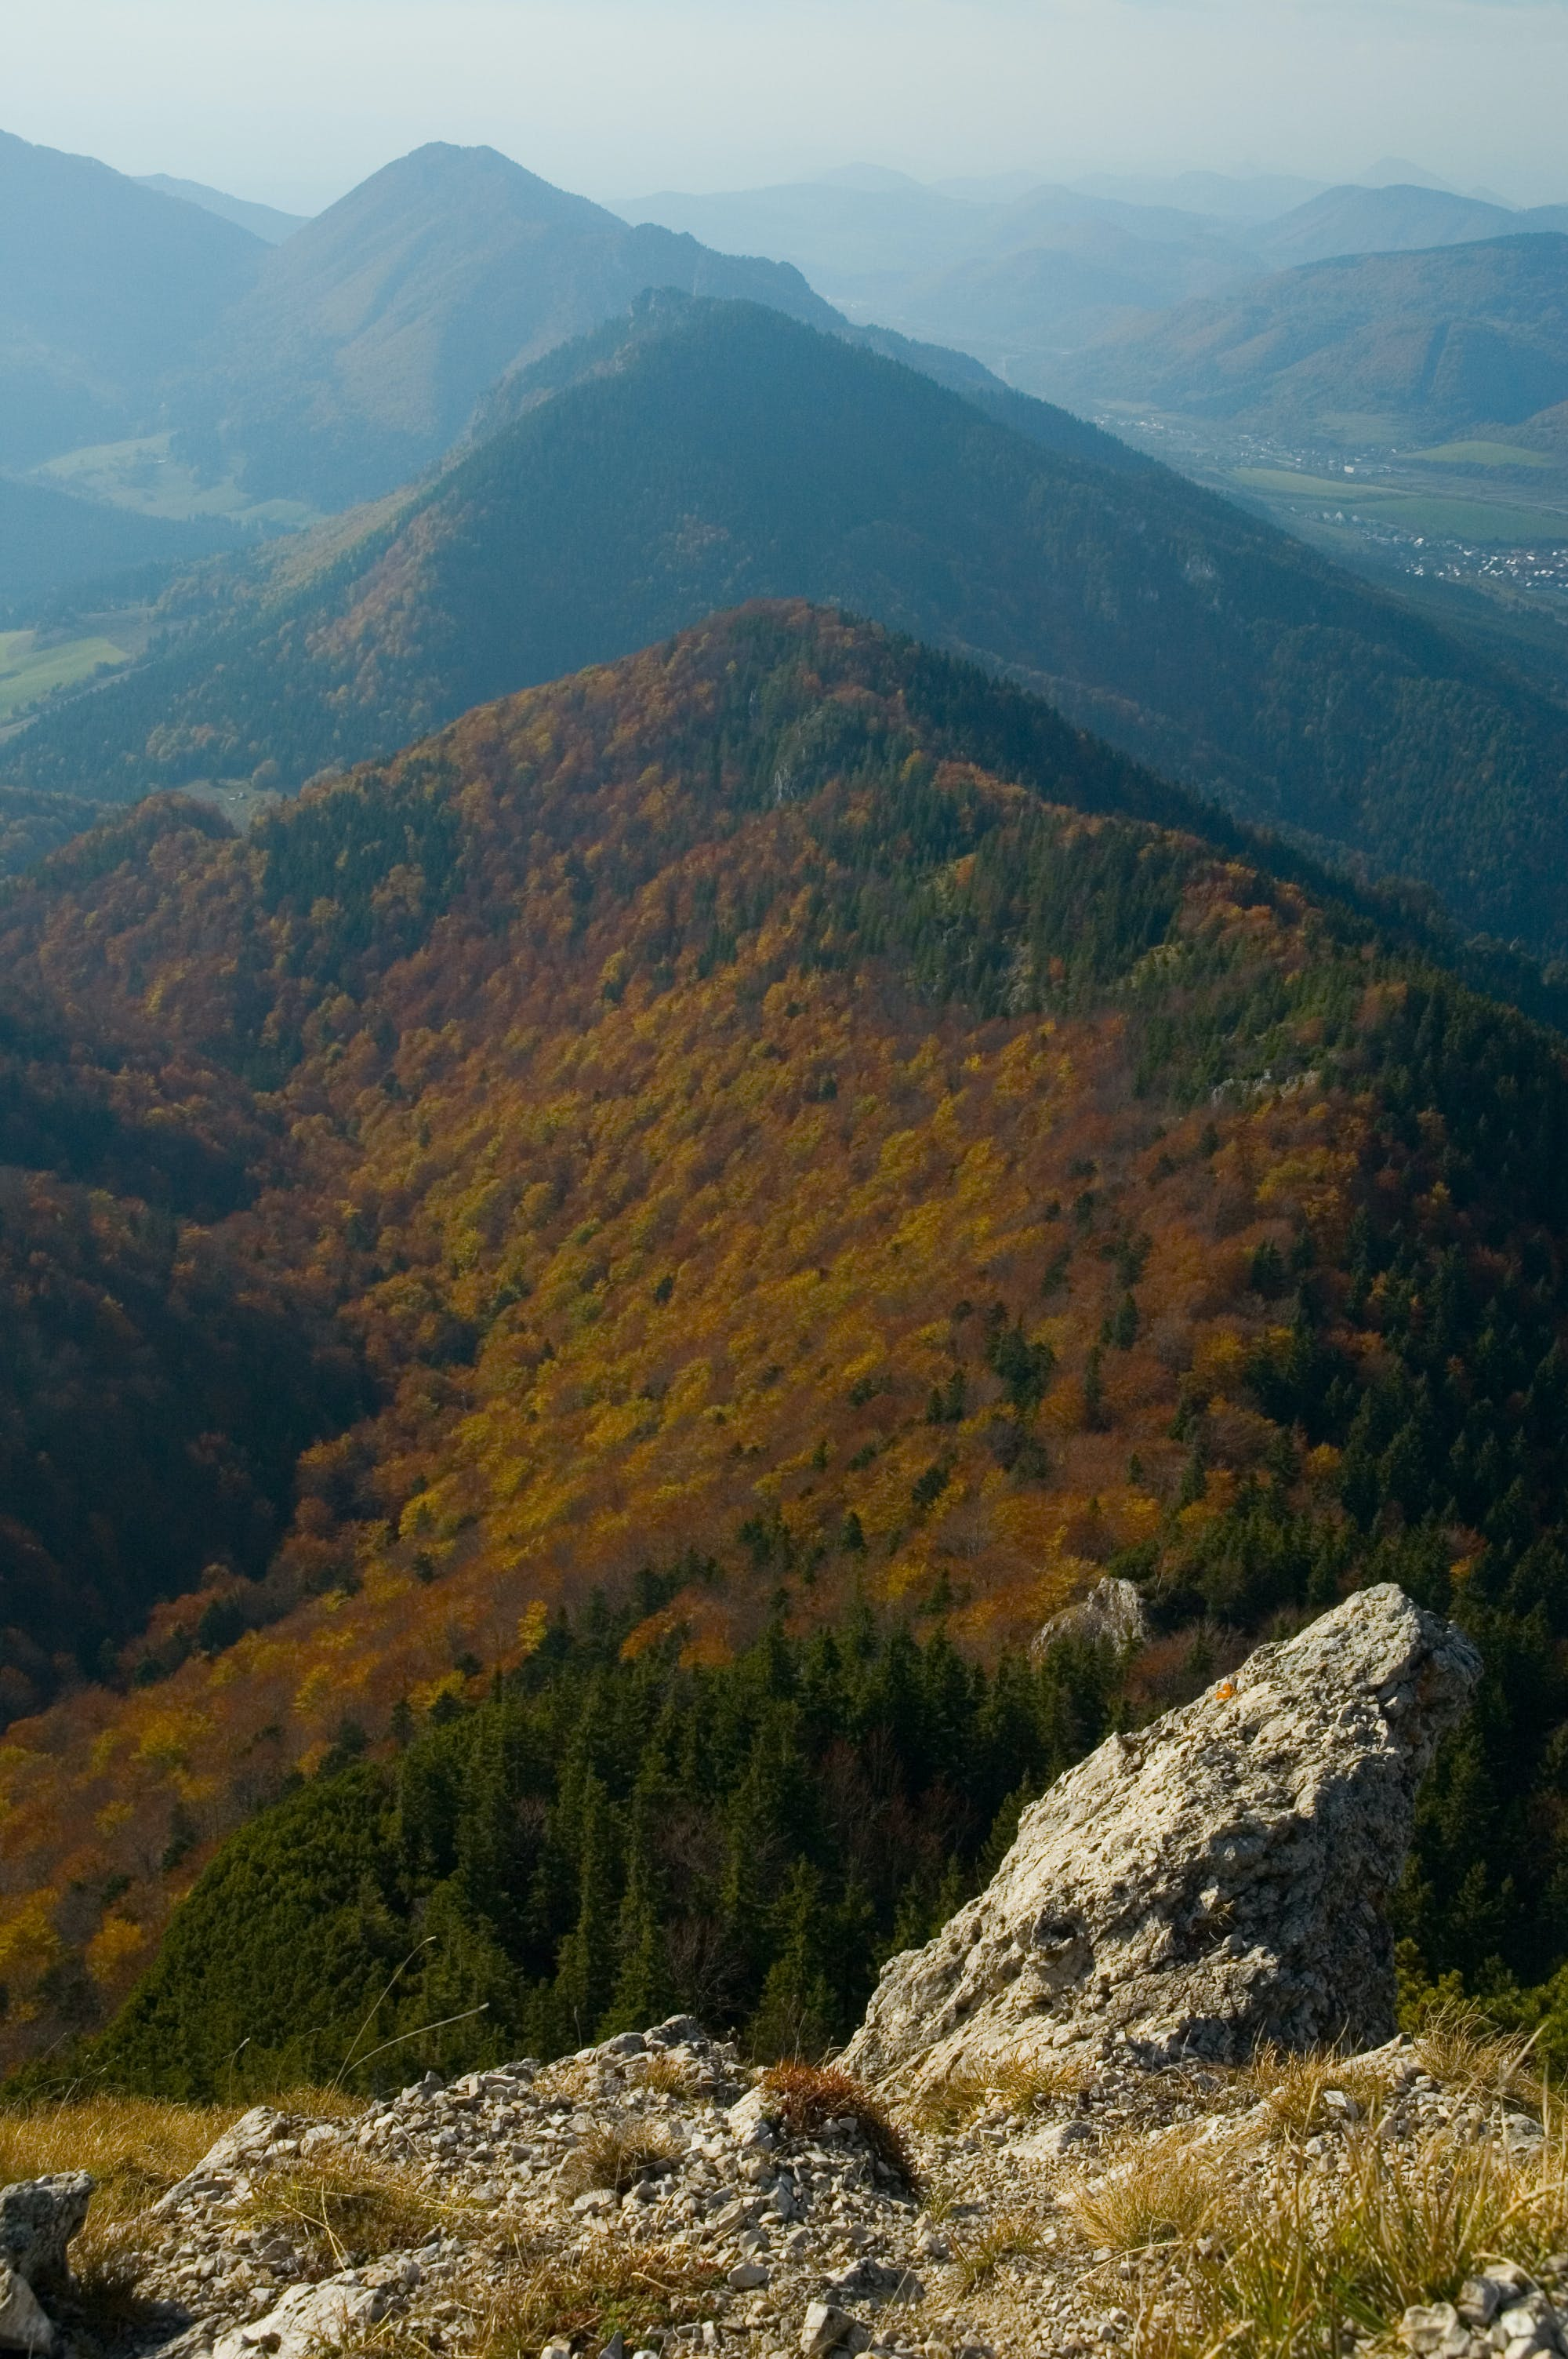 Aerial View on Mountain